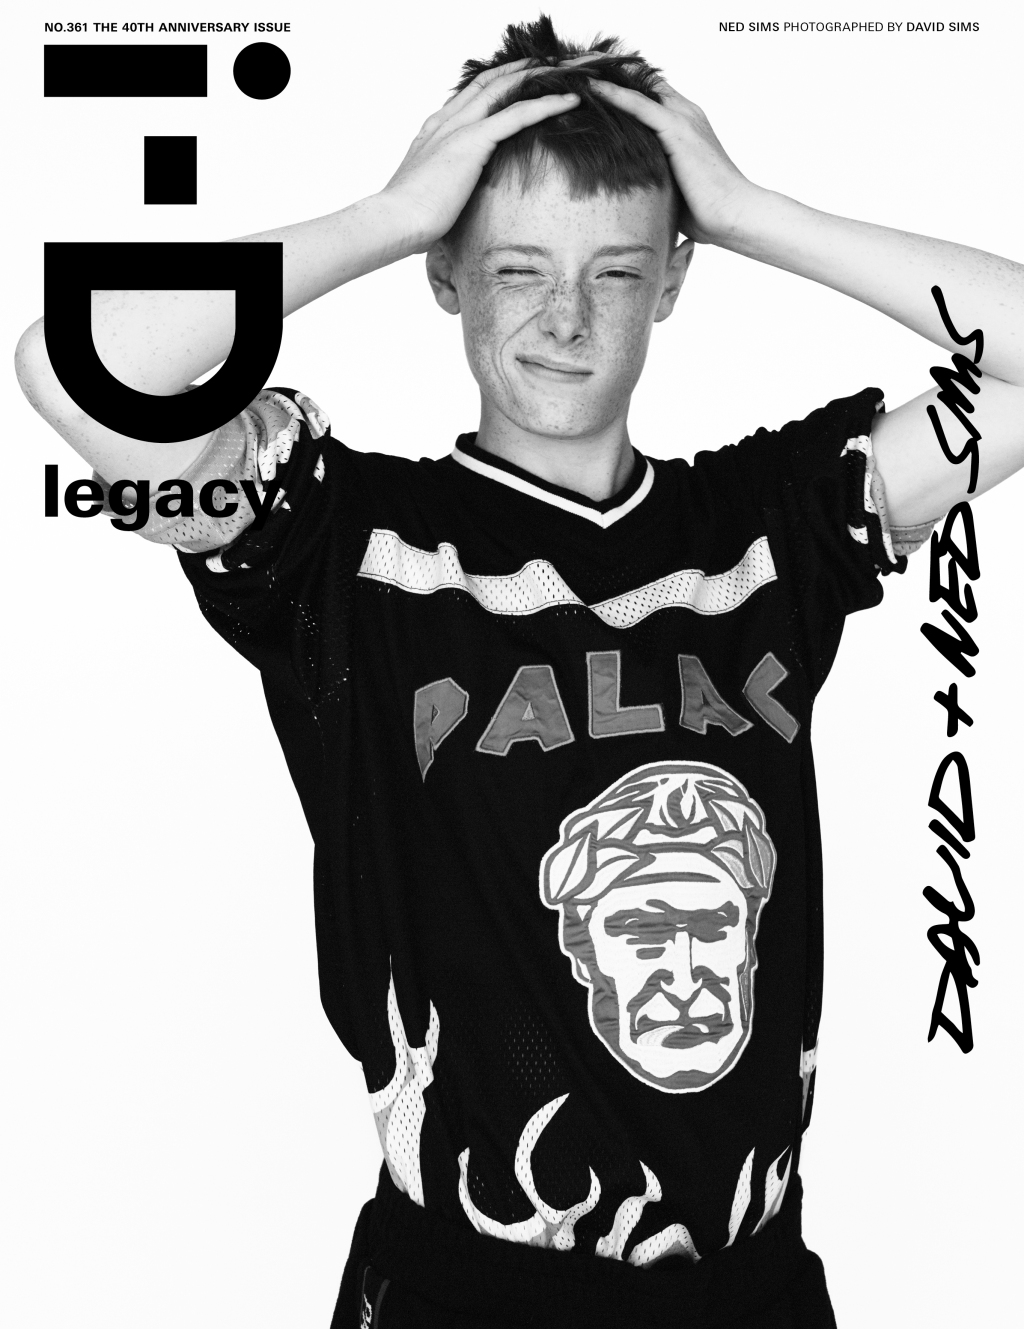 Ned Sims wearing Palace photographed by his father ​David Sims​ for the i-D magazine 40th anniversary issue.